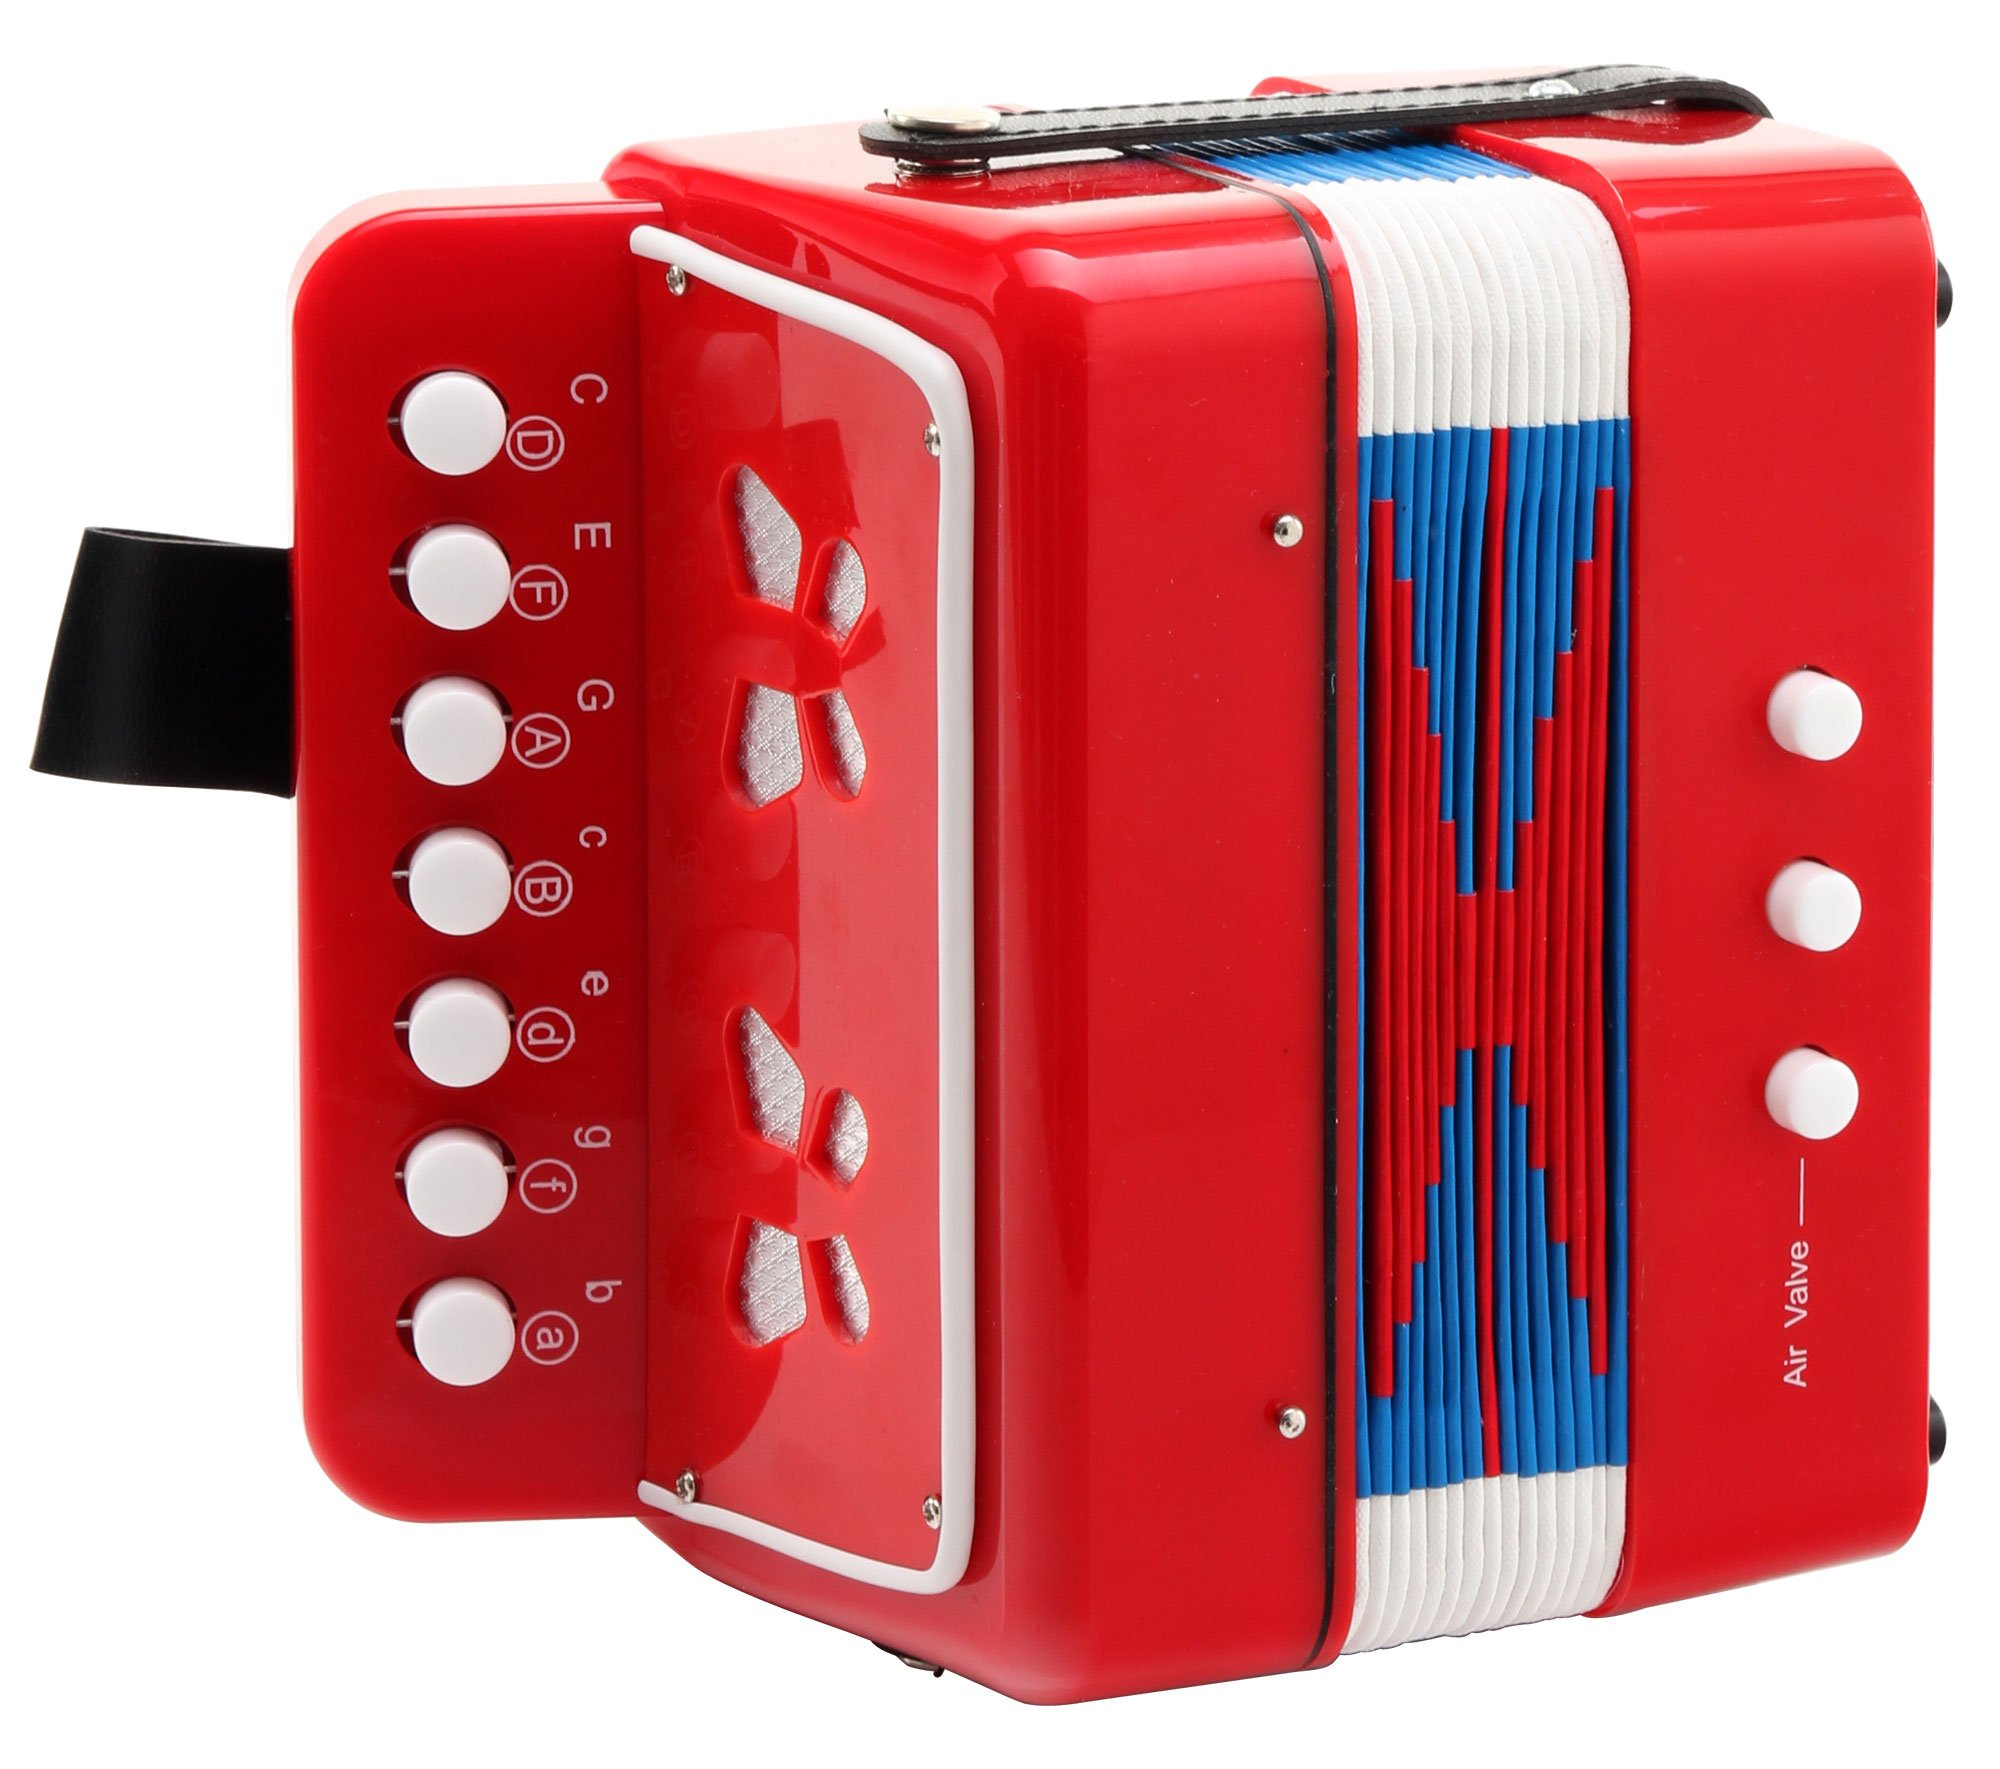 Classic Cantabile Bambino Children's Accordion, Red, Two Basses